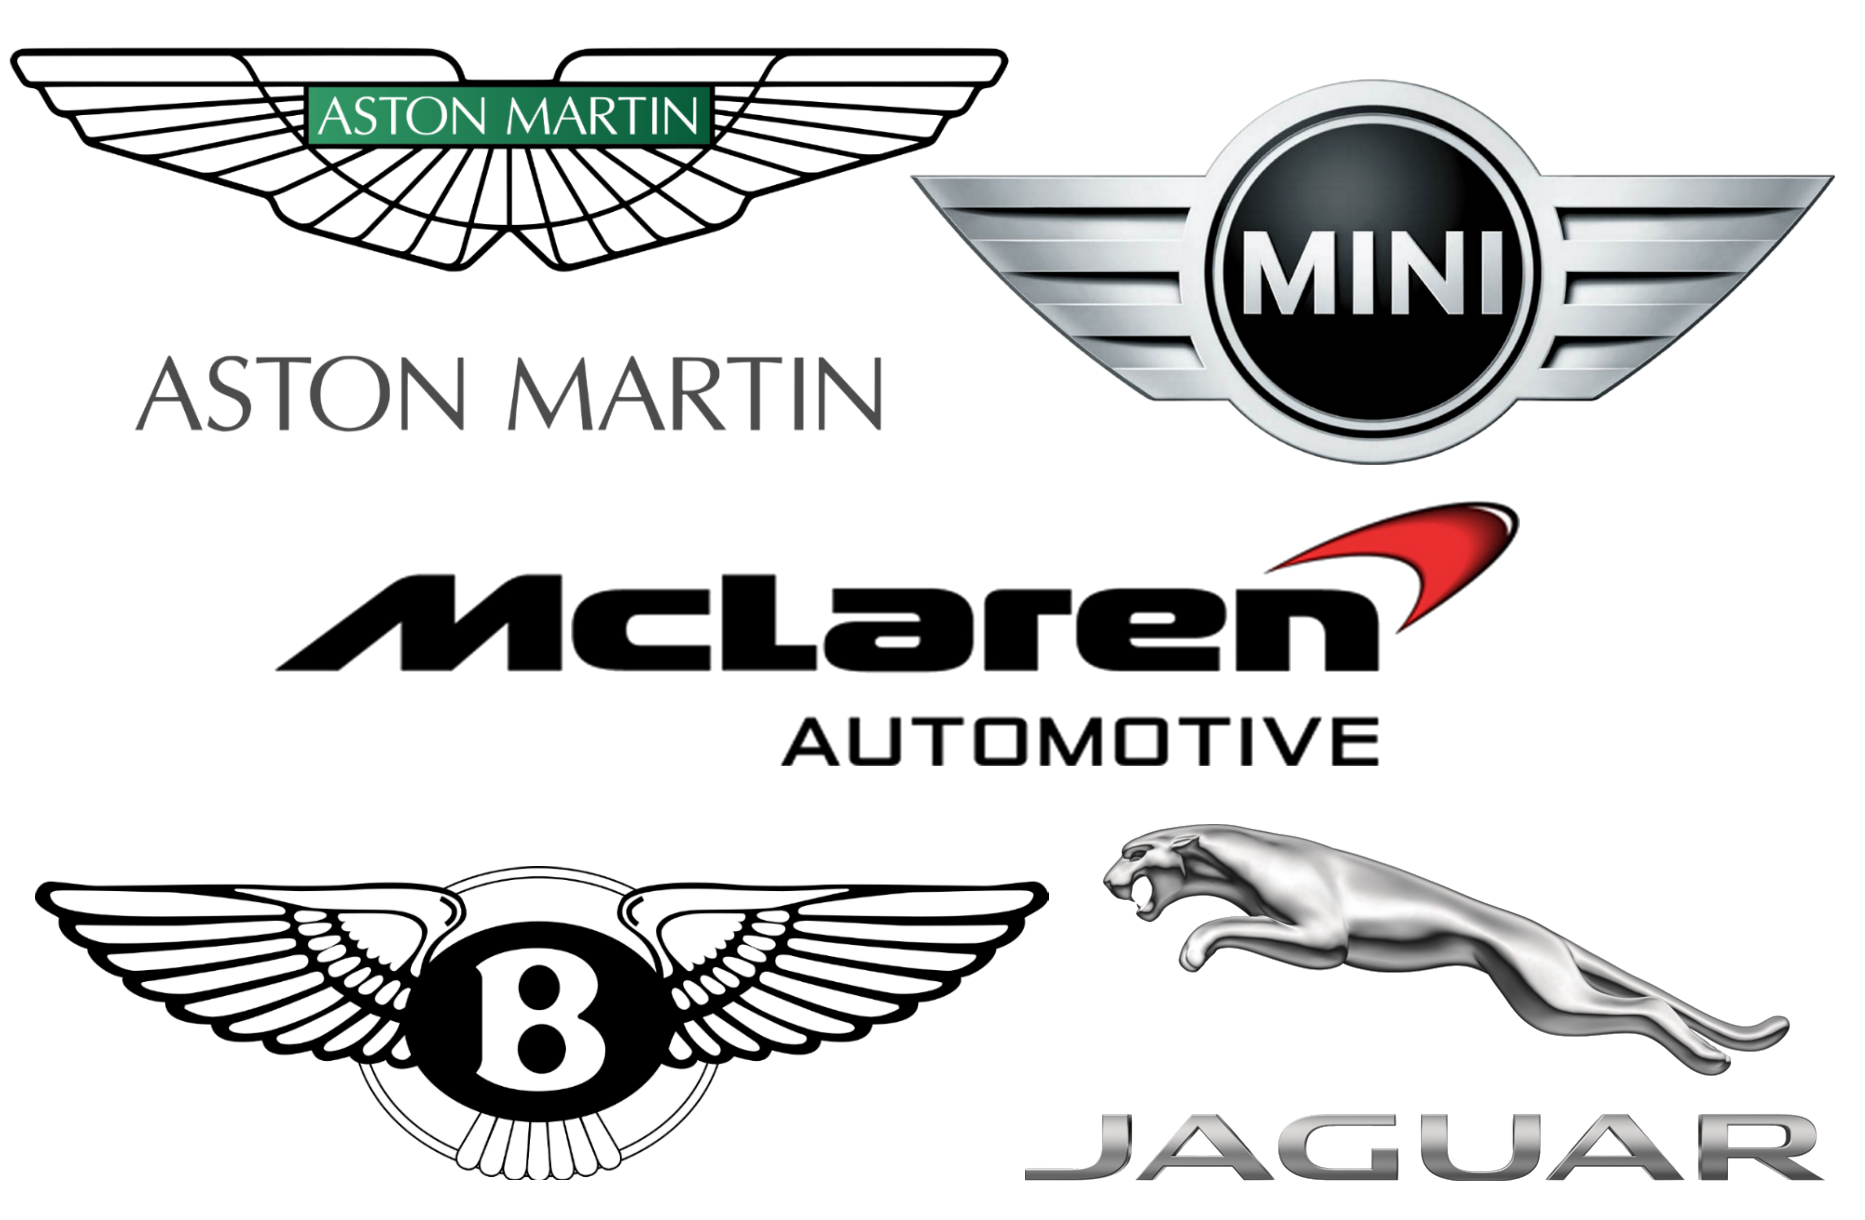 luxury car companies  British Car Brands, Companies and Manufacturers | Car Brand Names.com